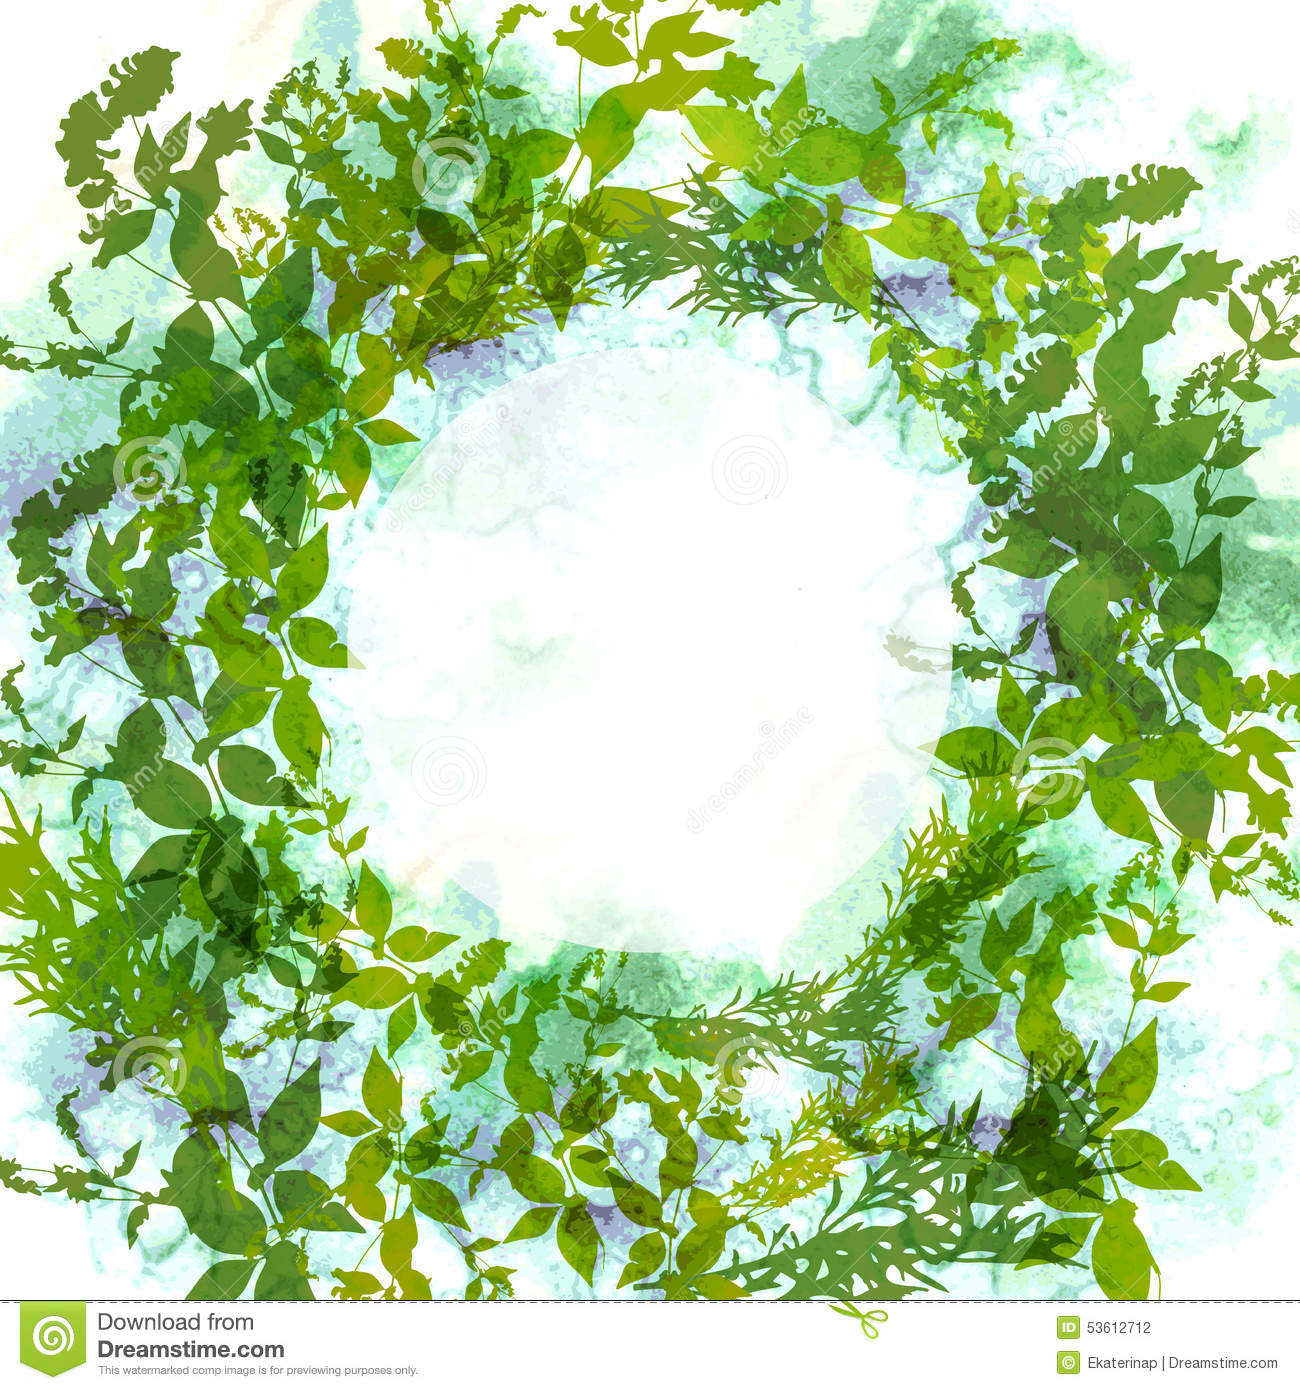 Spring Green Leaves And Flowers Background With Plants: Spring Background, Wreath With Green Leaves, Watercolor